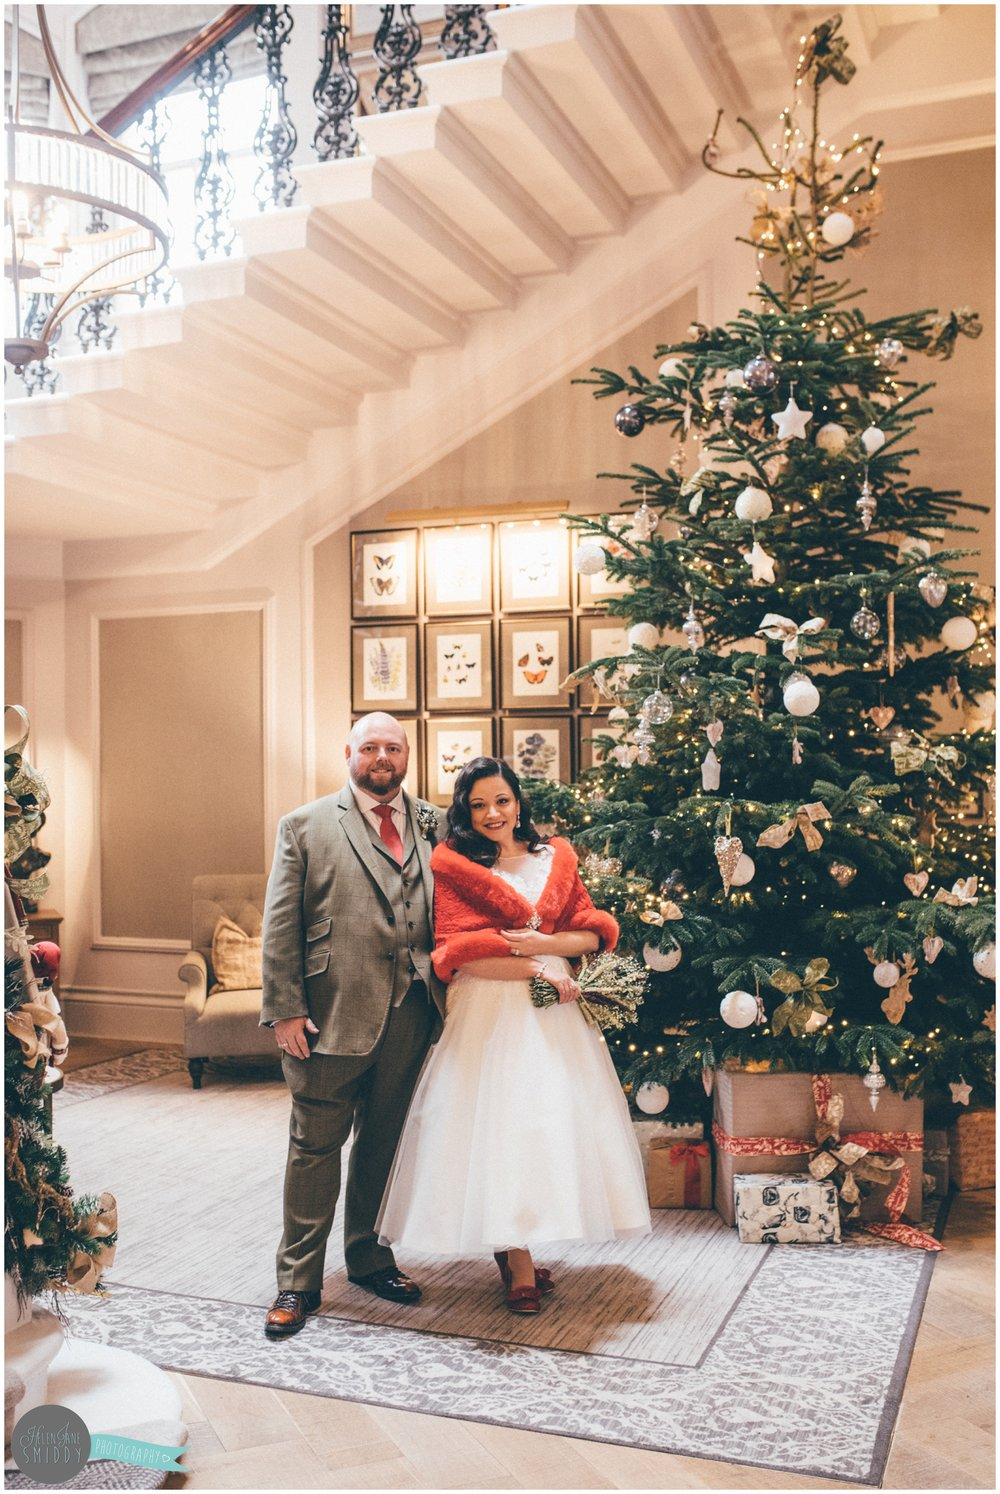 christmas-christmaswedding-wedding-cheshire-cheshirewedding-cheshireweddingphotography-weddingphotography-weddingphotographer-cheshireweddingphotograpger-york-cheshirewedding-yorkwedding-christmaseve